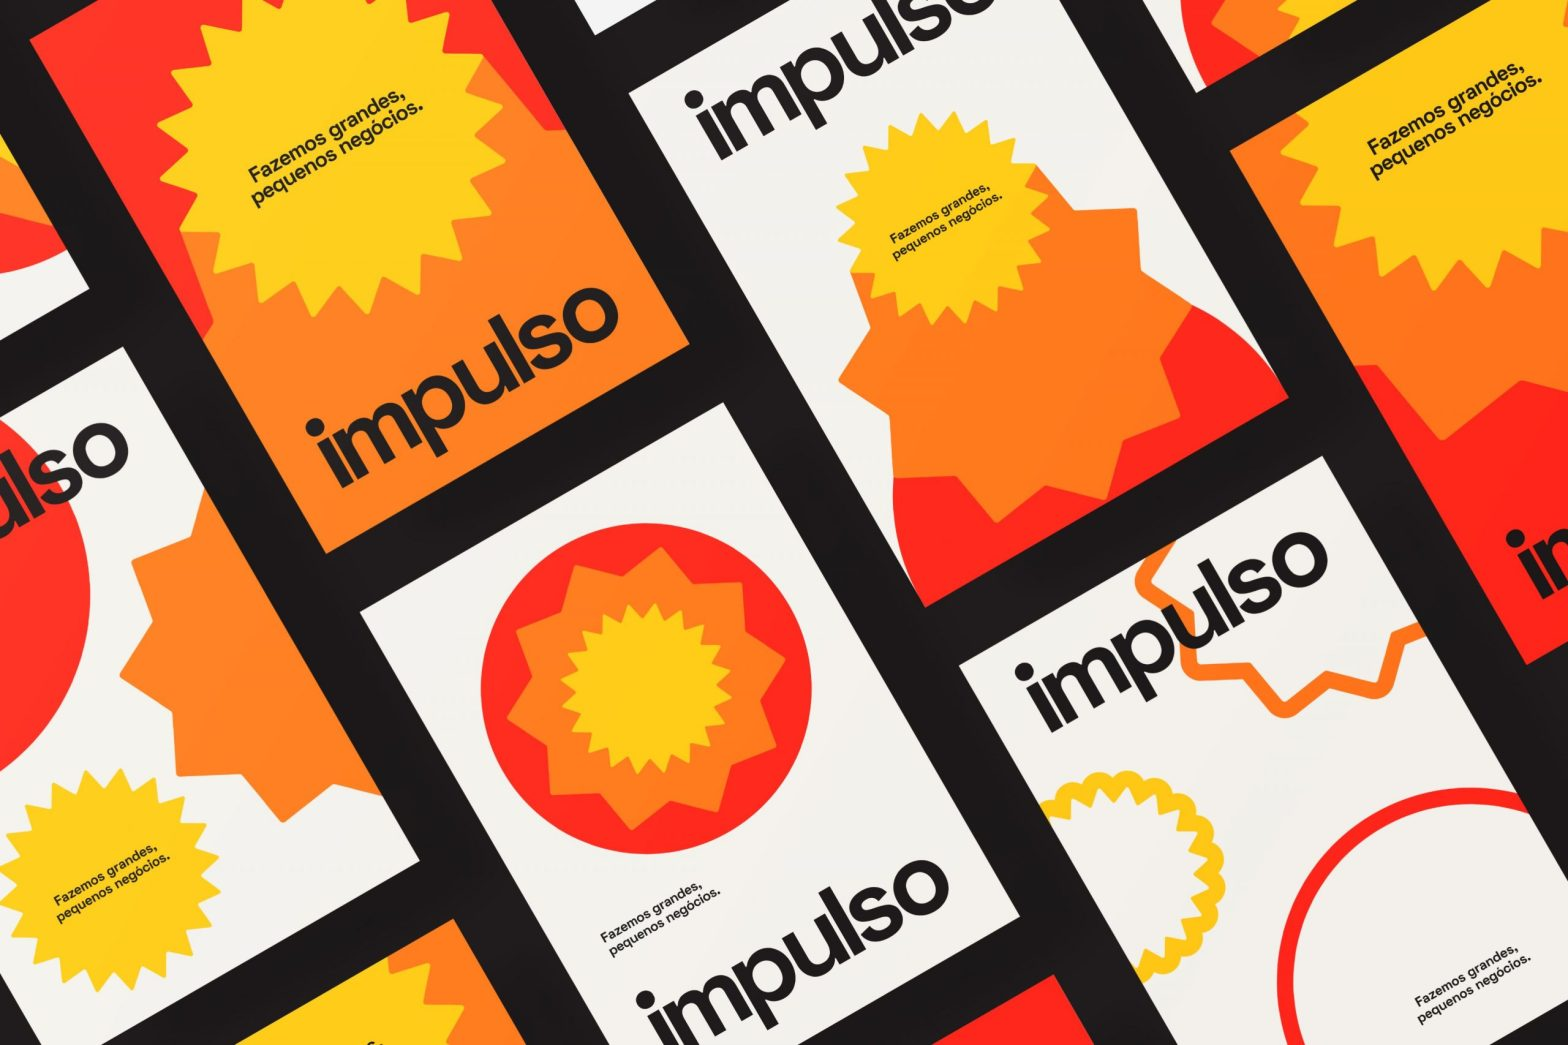 Thumbnail for Impulso's Redesign Showcases The Company's Values Through Its Branding